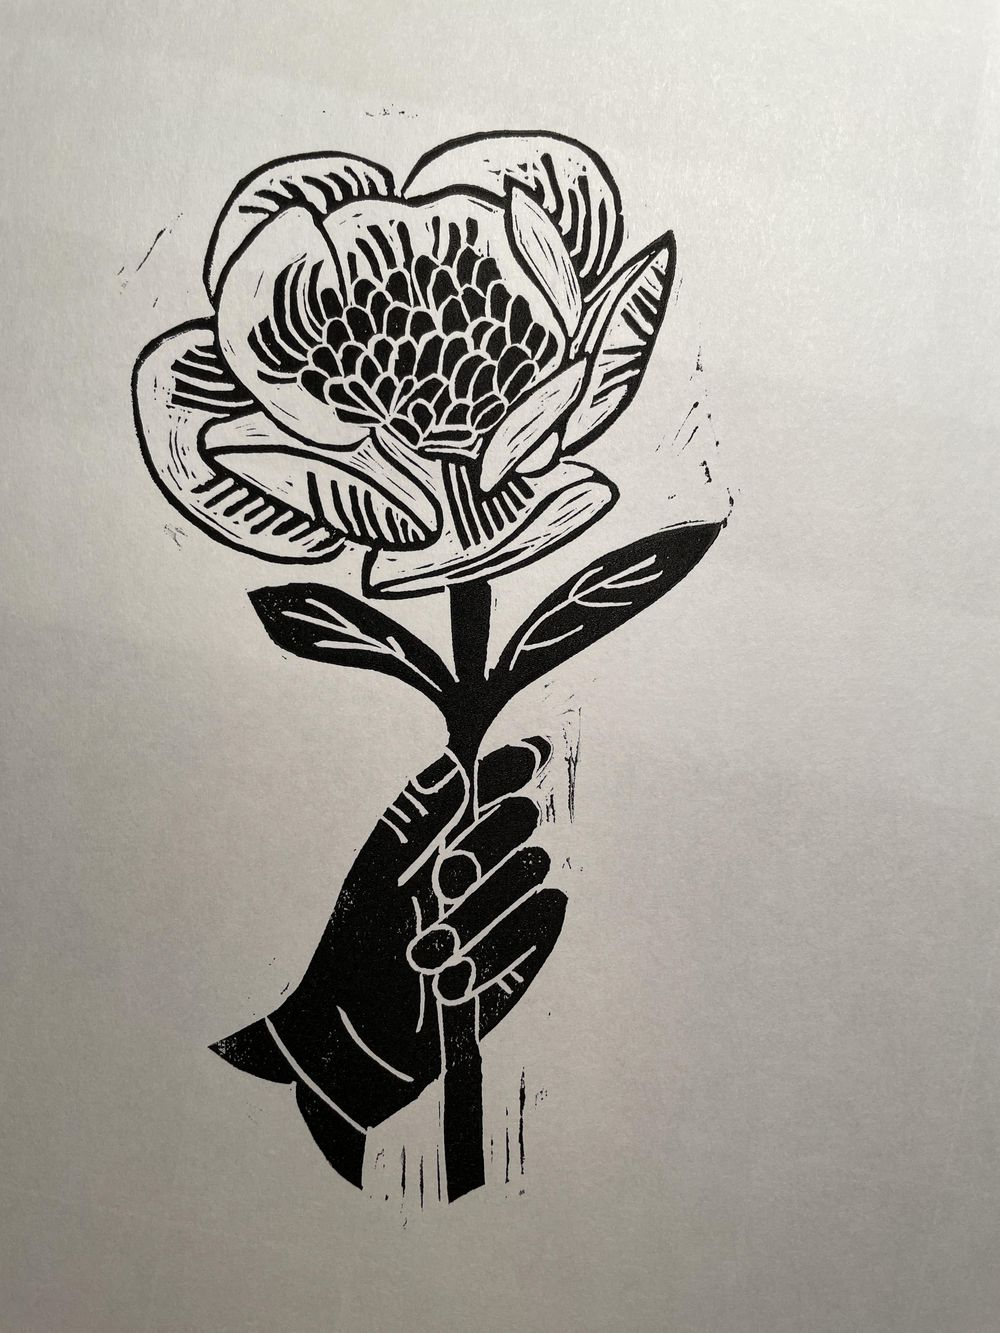 First block print! - image 3 - student project